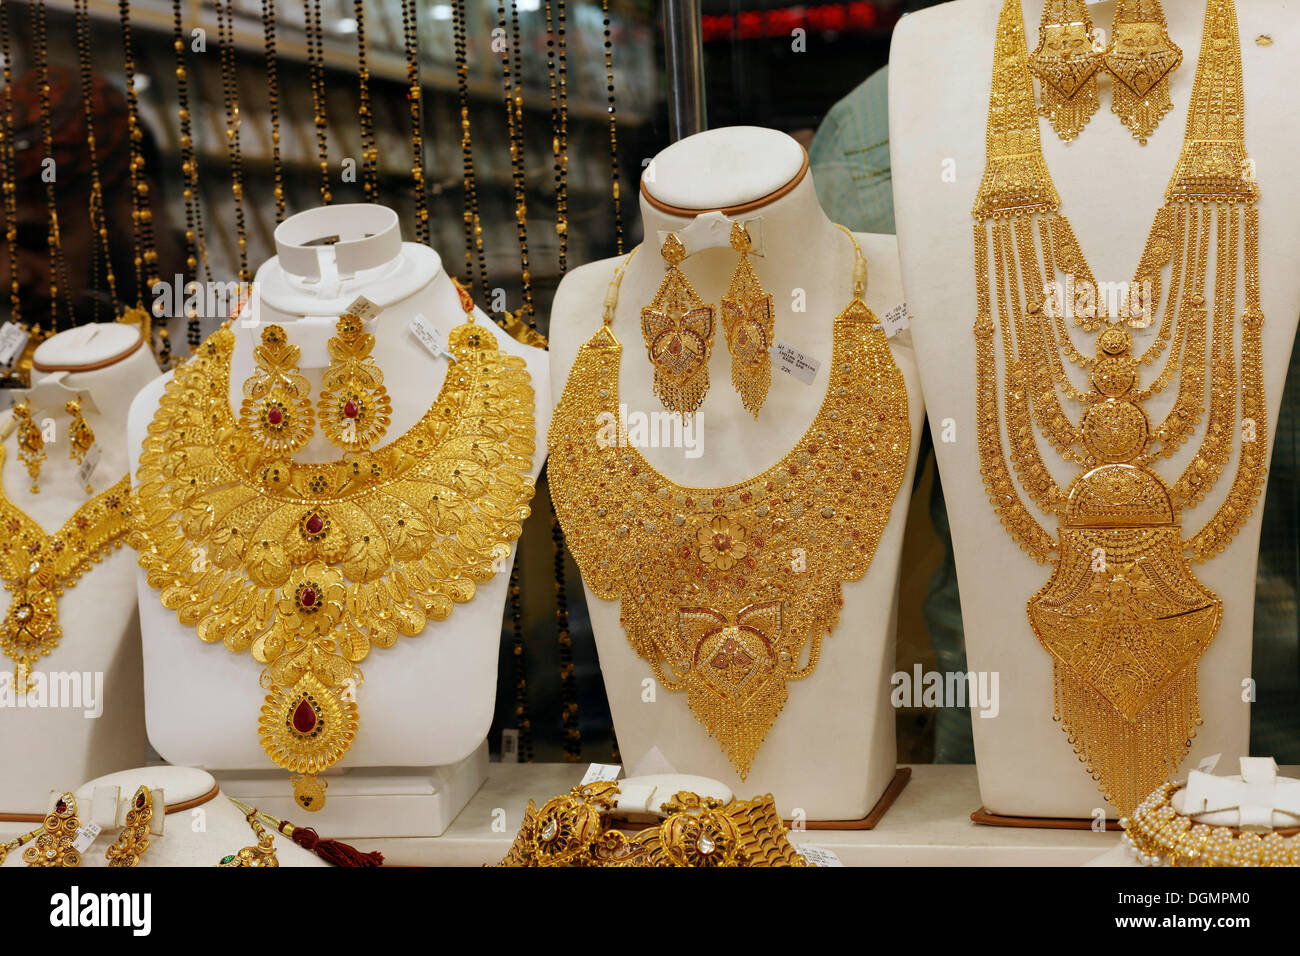 free in at emirates united for image sale dubai stock detail photo royalty arab gold picture souk bracelets